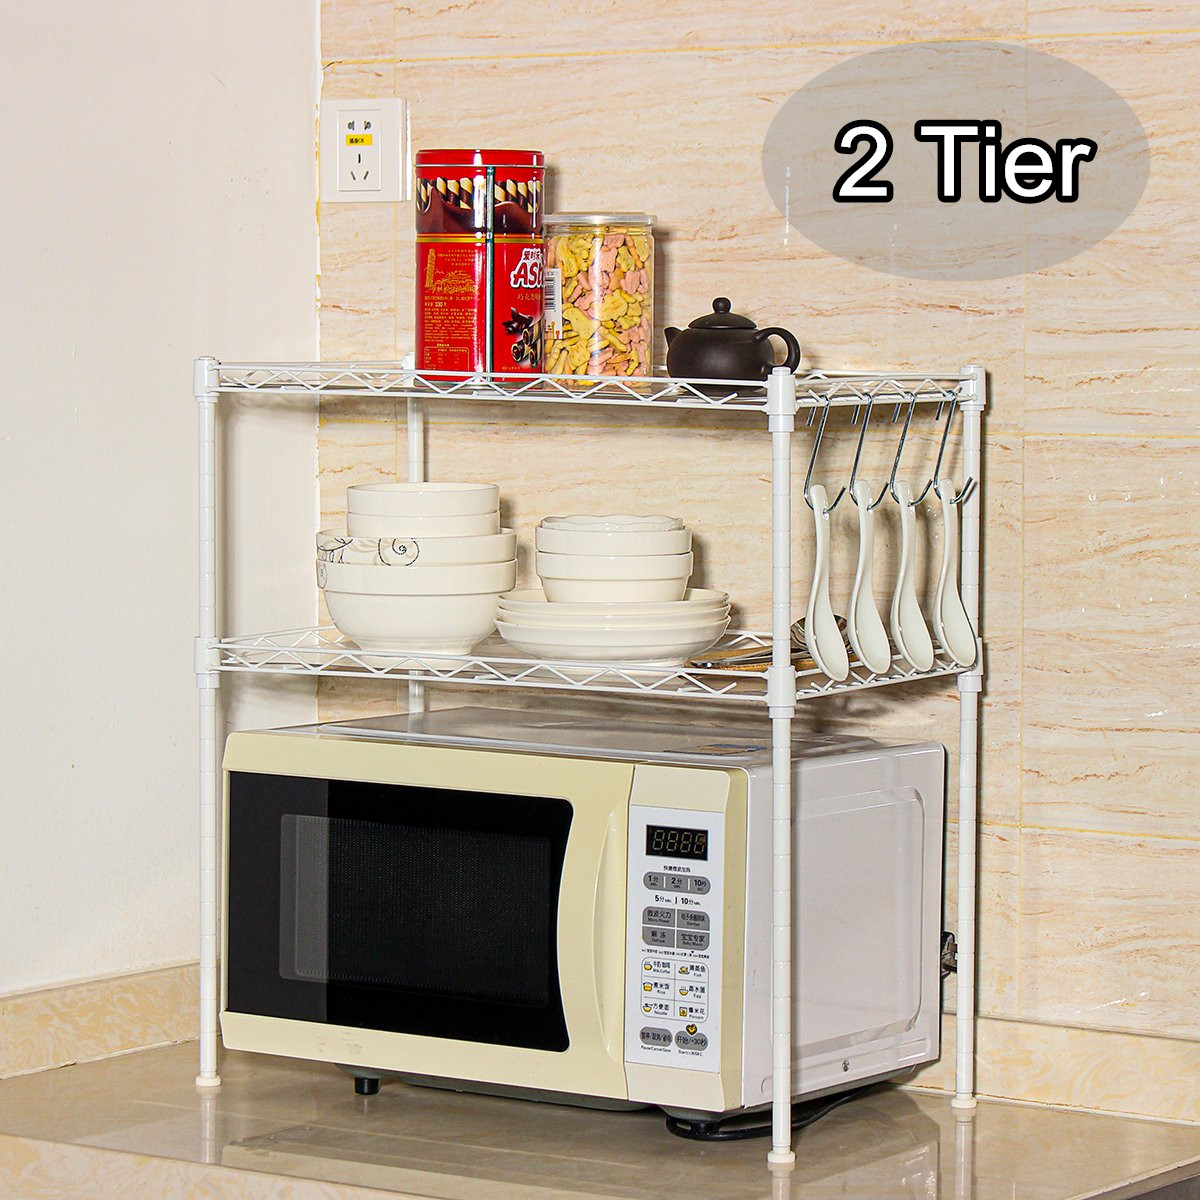 Details About 2 Tier Adjustable Steel Wire Shelving Unit Metal Rack Home Kitchen Storage Shelf